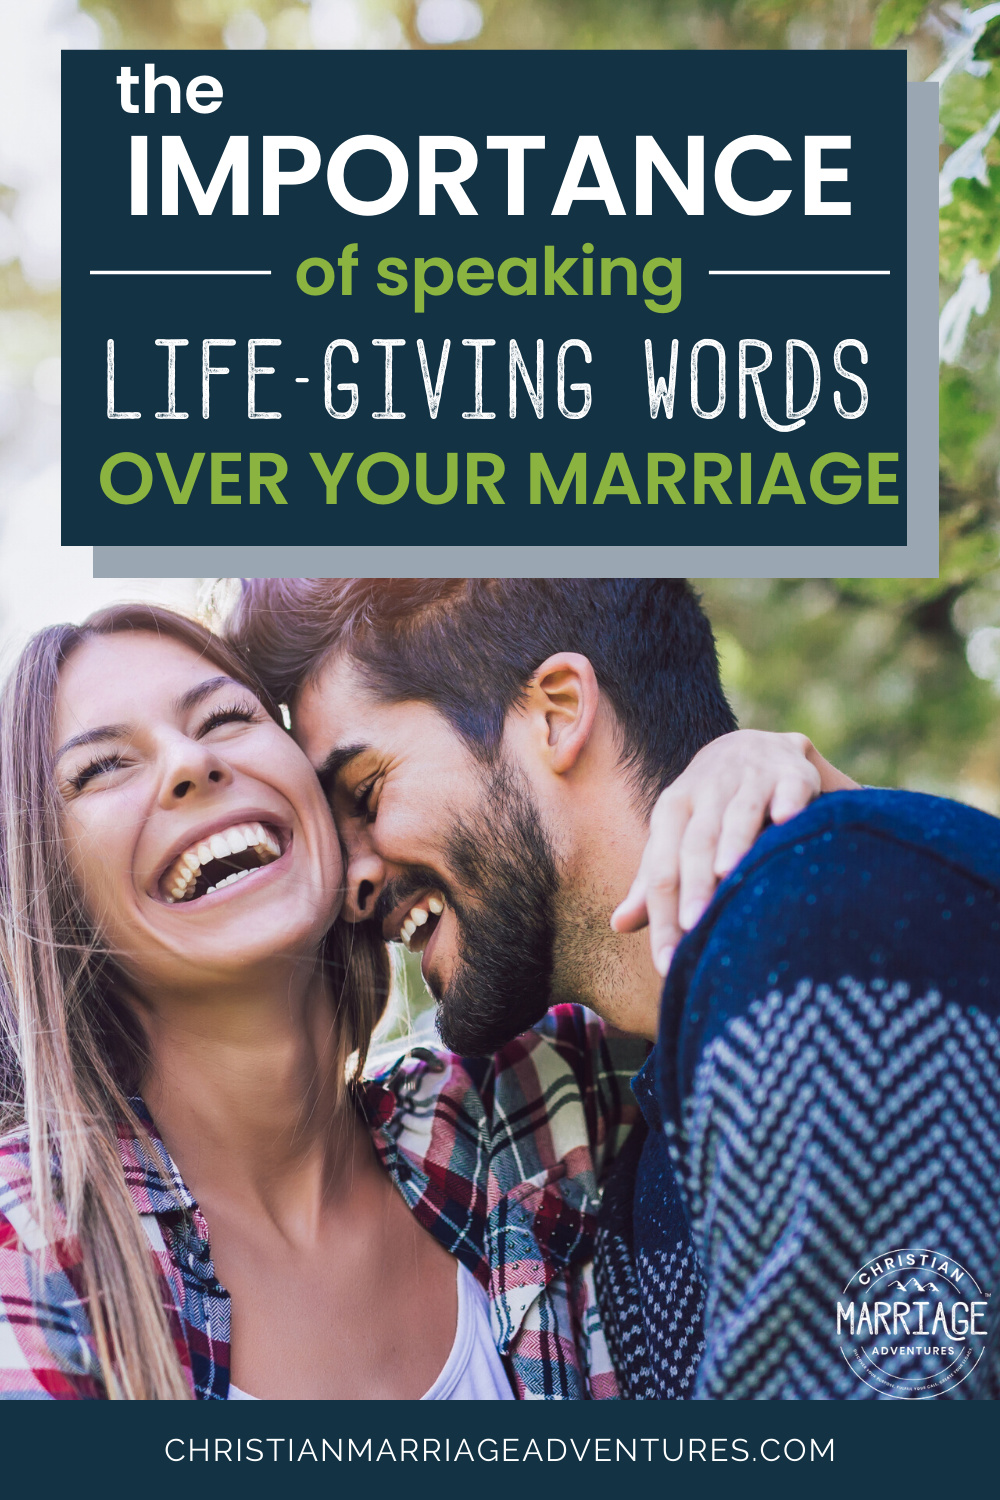 The Importance of Speaking Life-giving Words Over Your Marriage